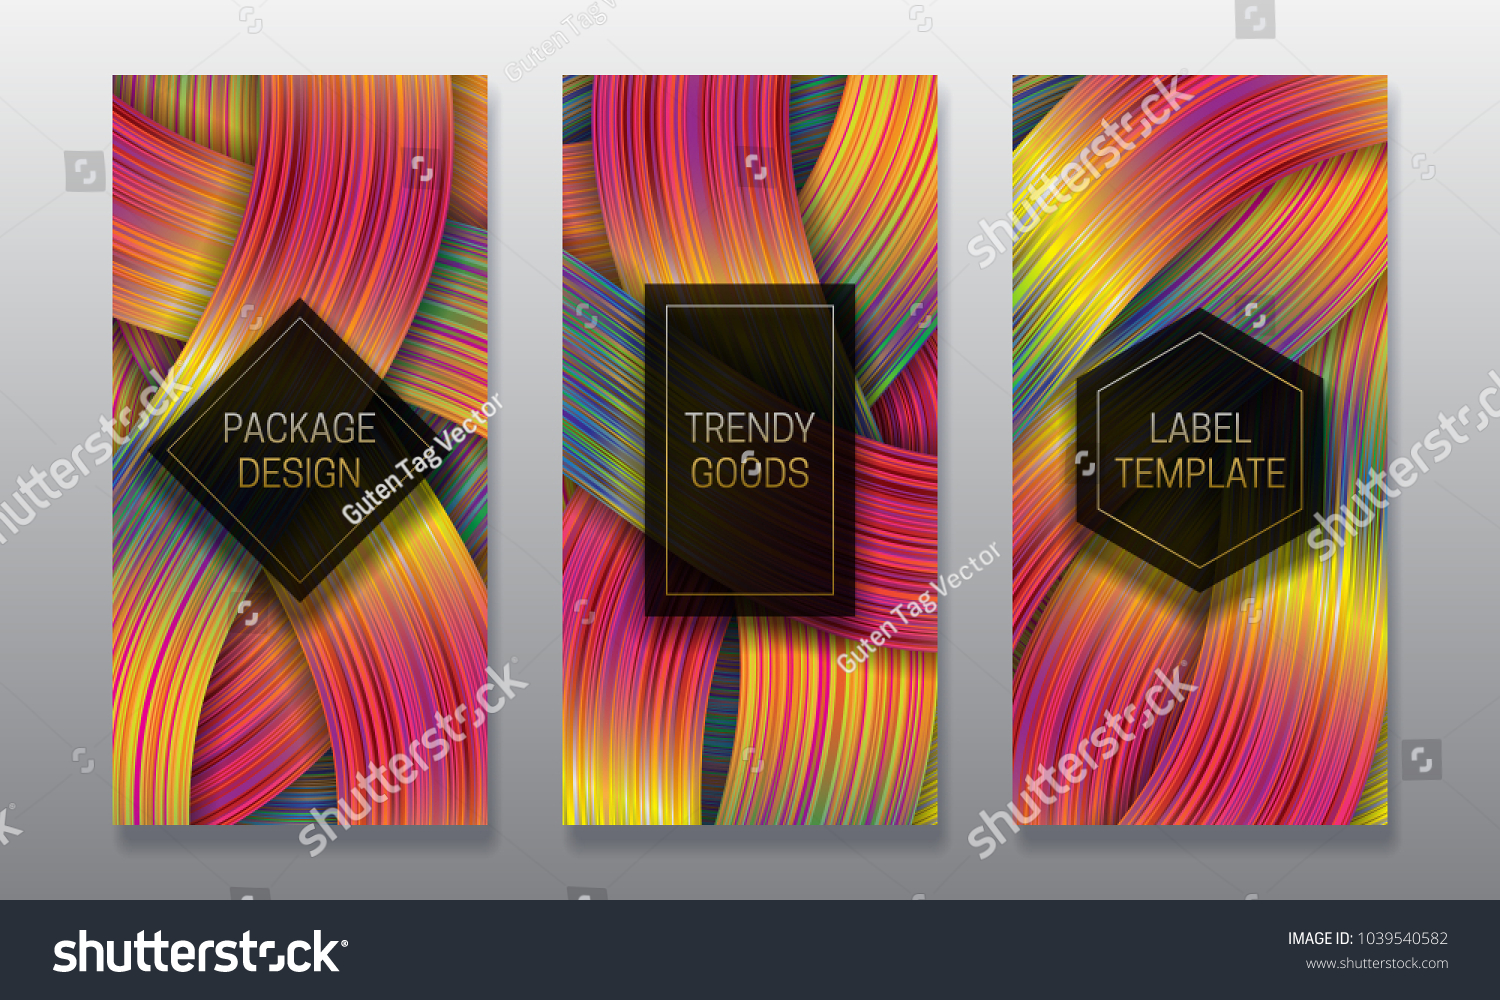 Luxury Packaging Design Set Colorful Labels Stock Vector 1039540582 ...